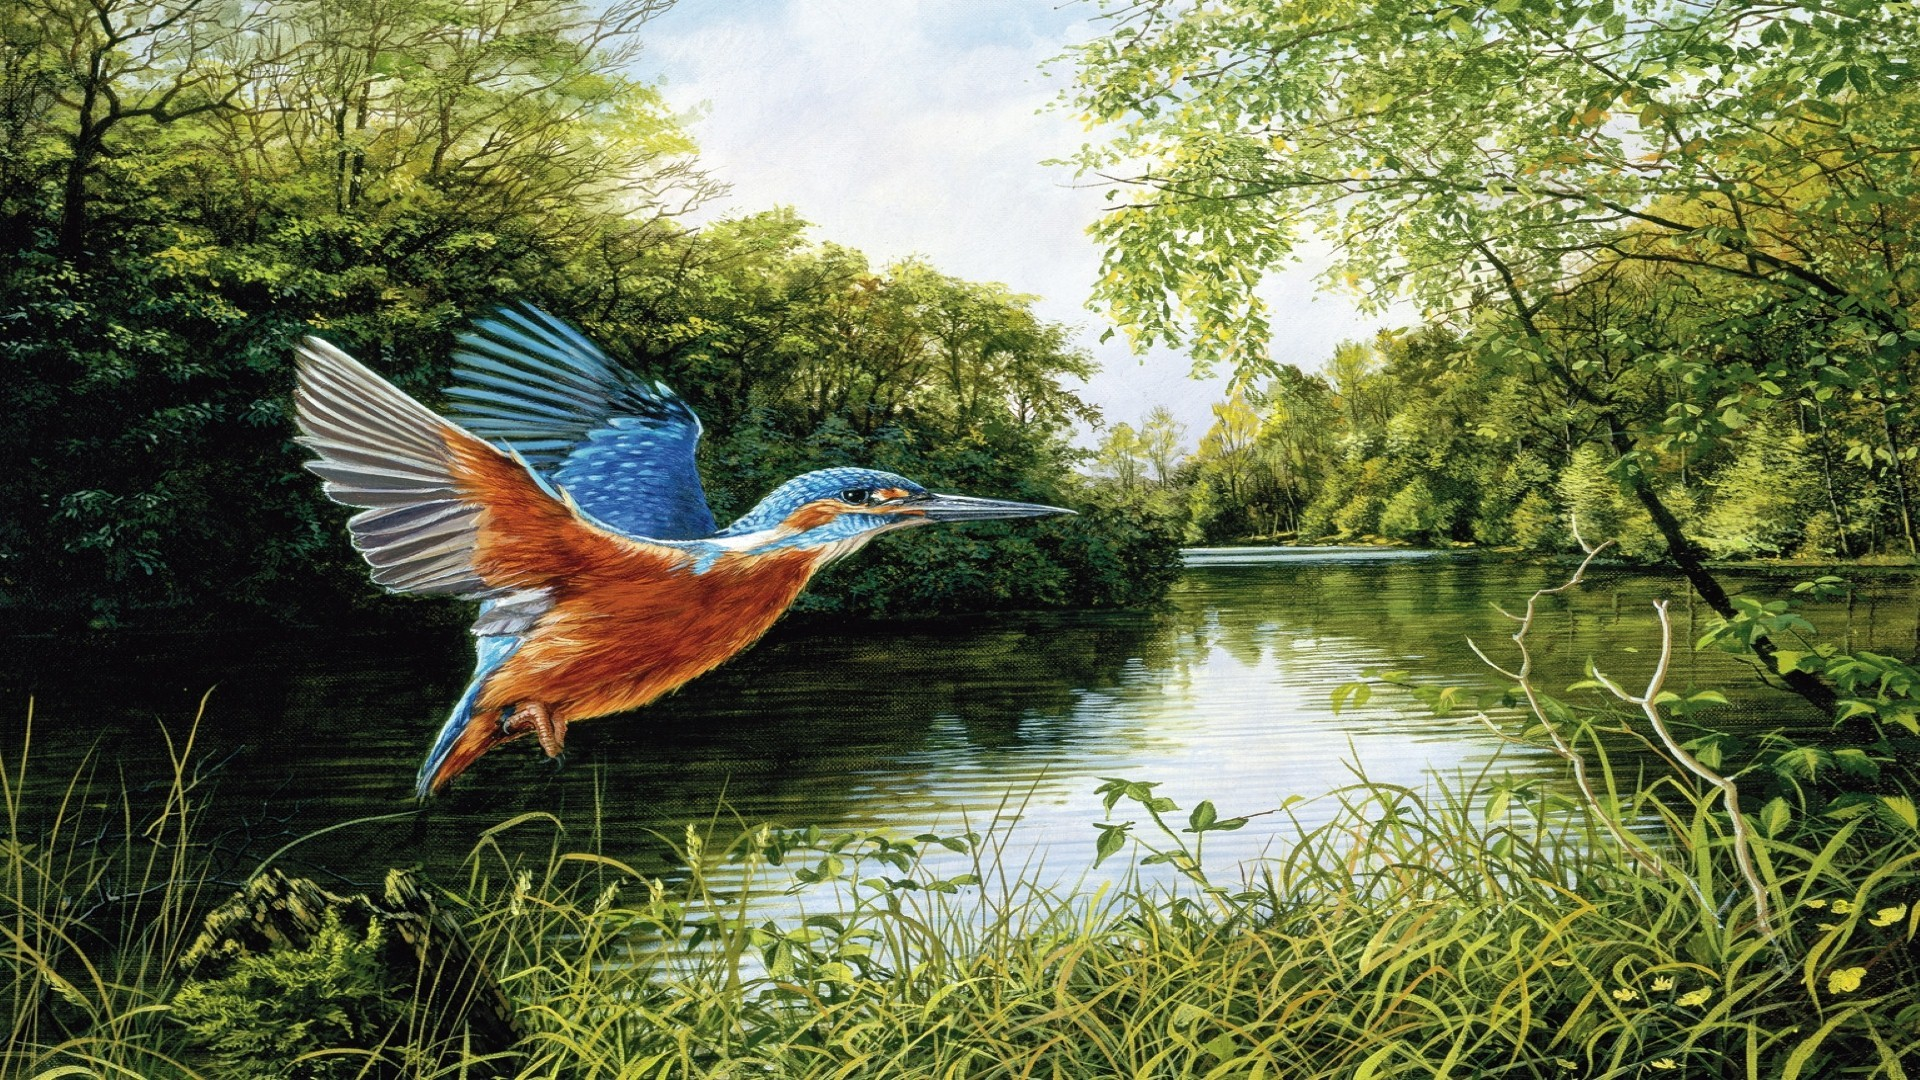 Flying Kingfisher Painting Wallpapers ID742372